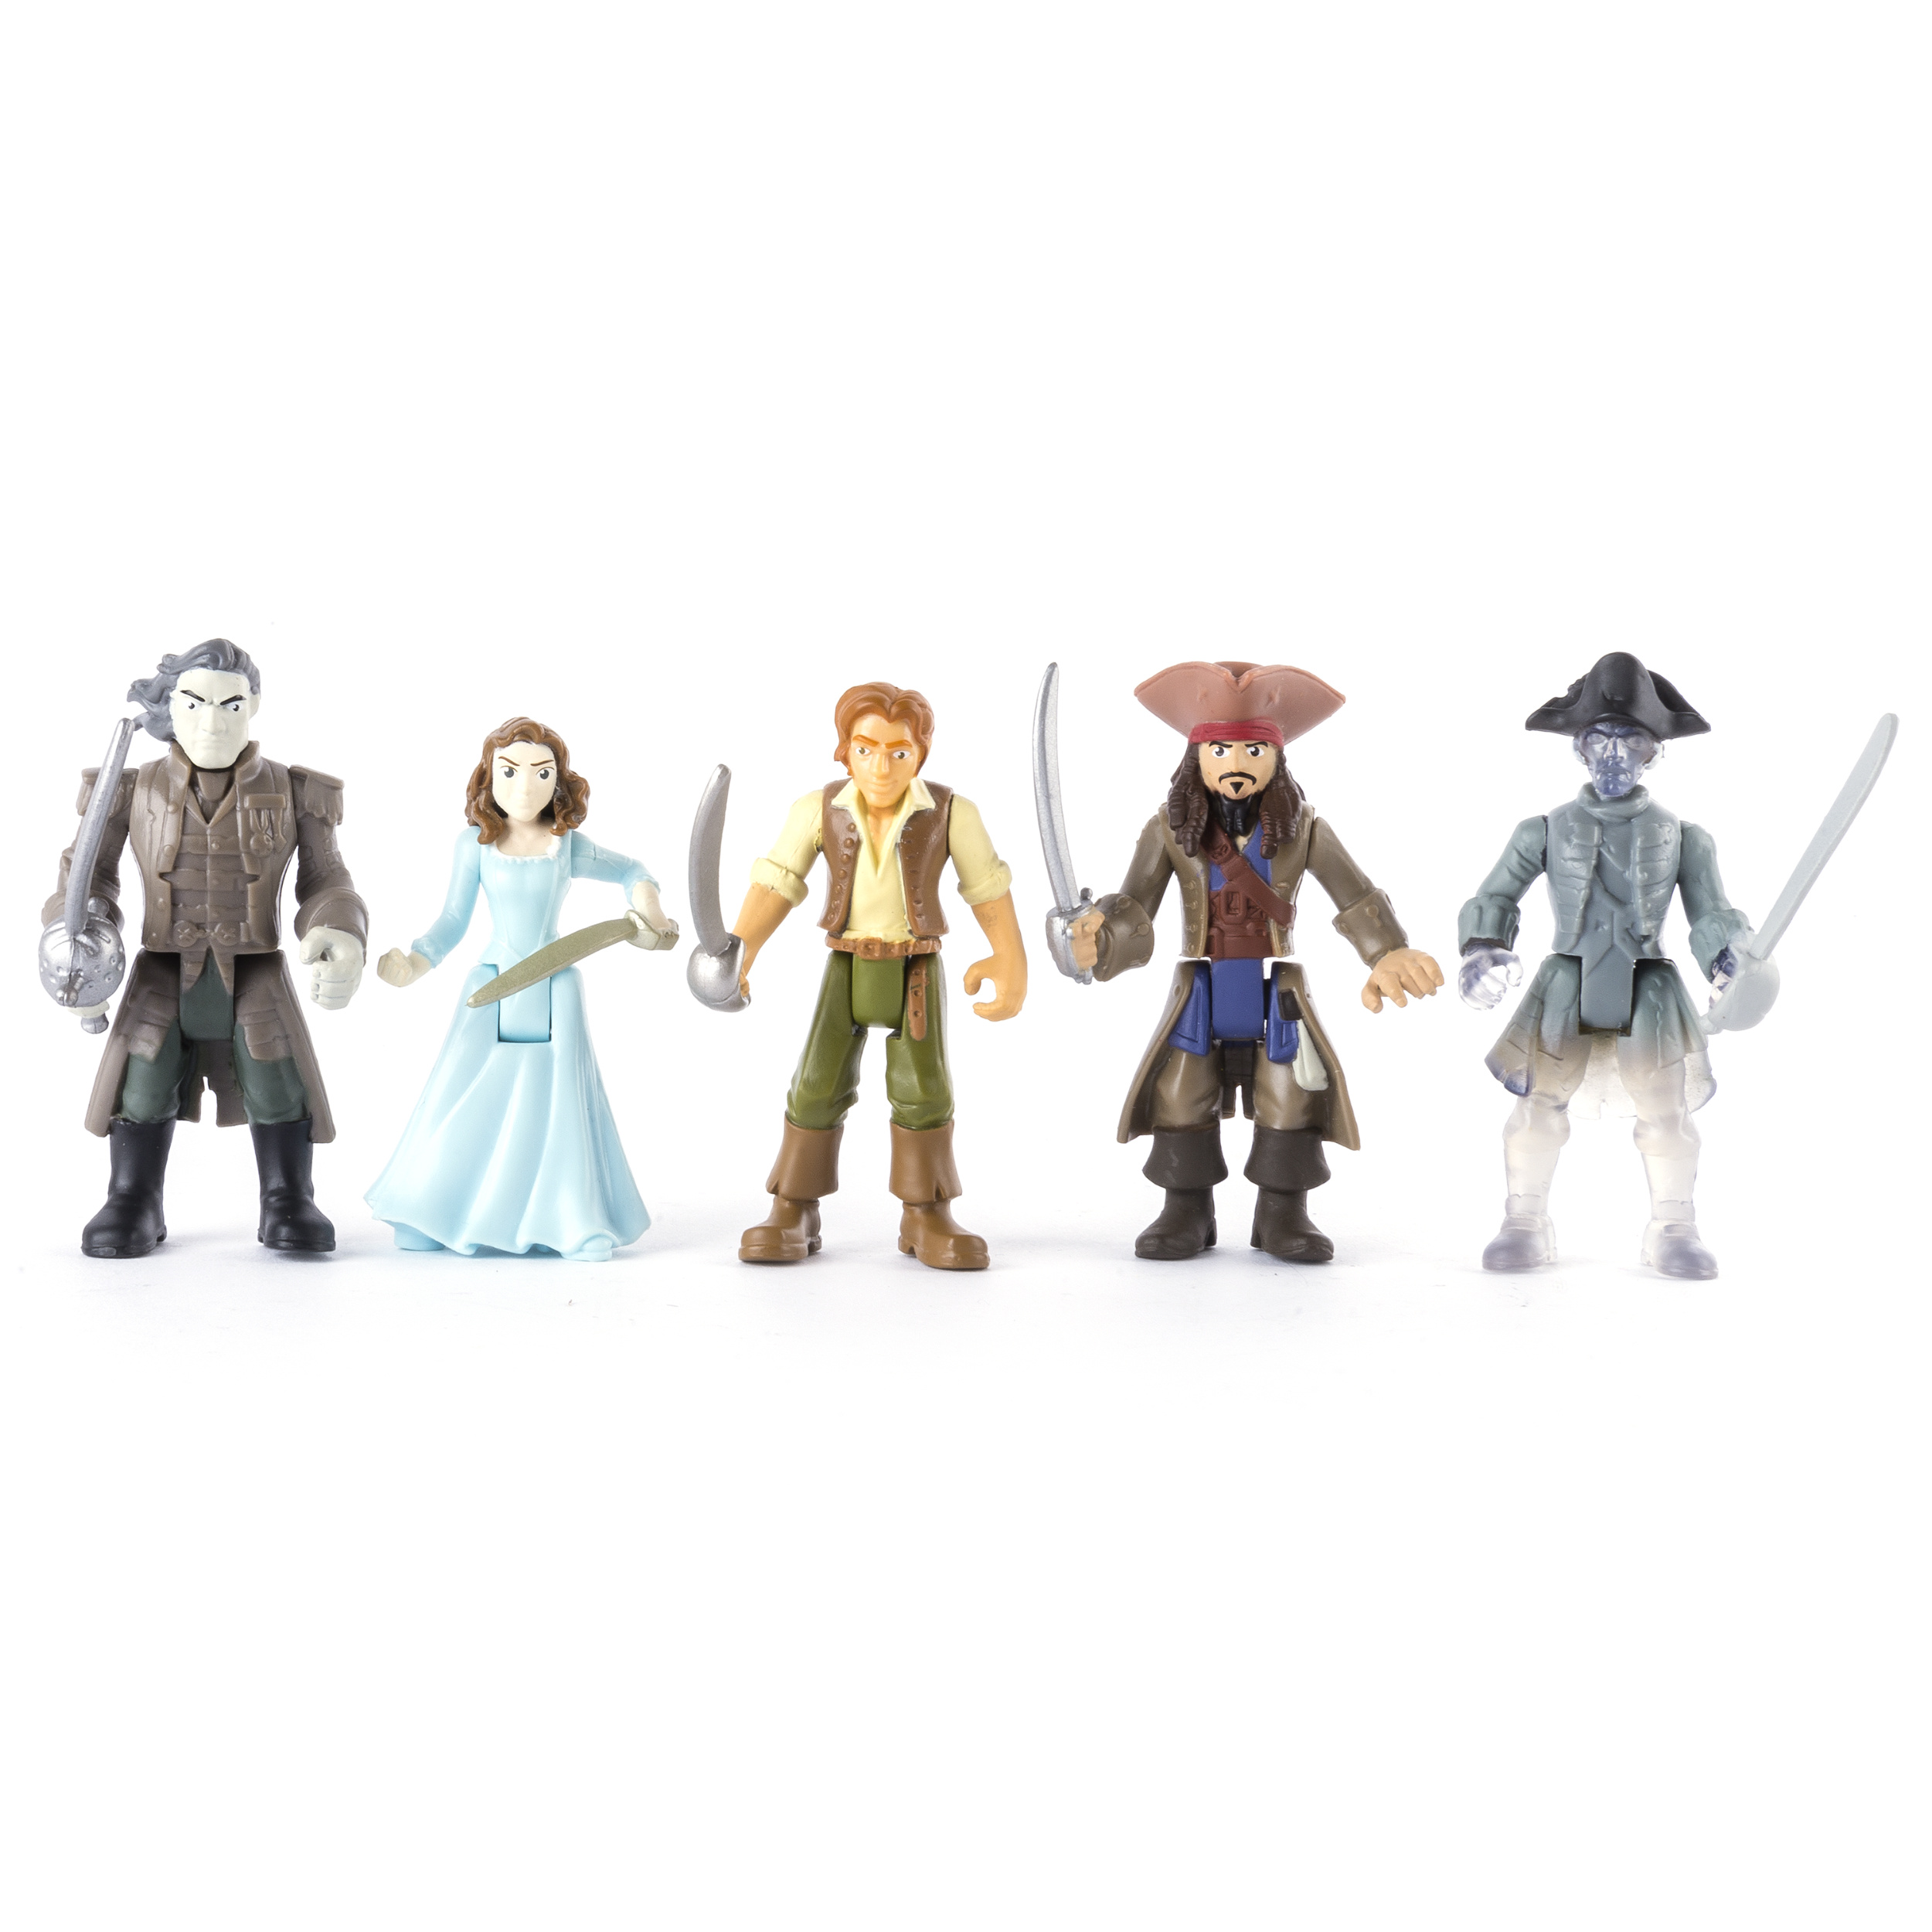 Pirates of the Caribbean: Dead Men Tell No Tales Battle Figure 5-Pack by Spin Master Ltd